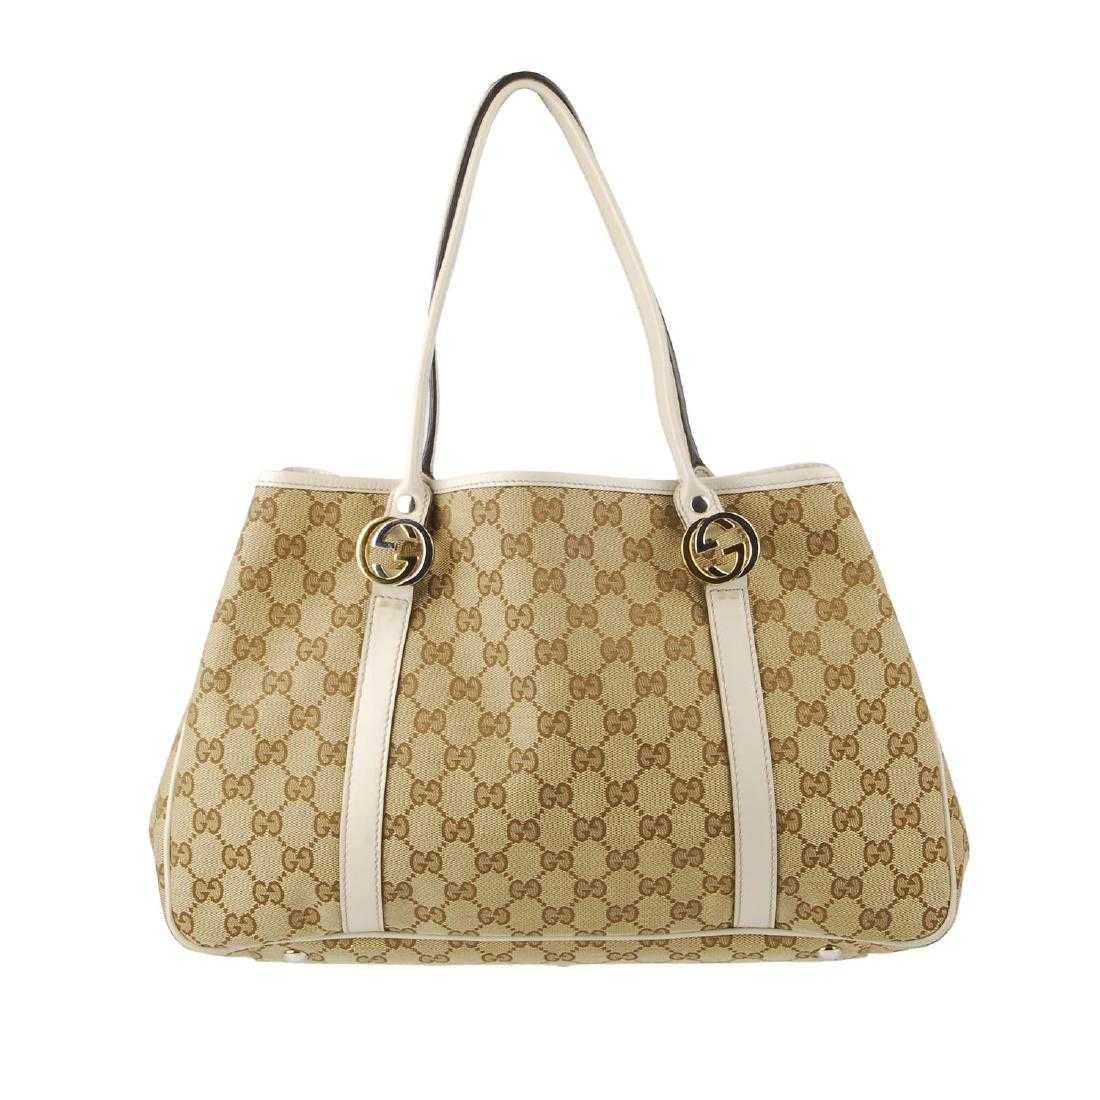 bef776f96ee GUCCI - a Monogram GG Twins Tote handbag. Crafted from